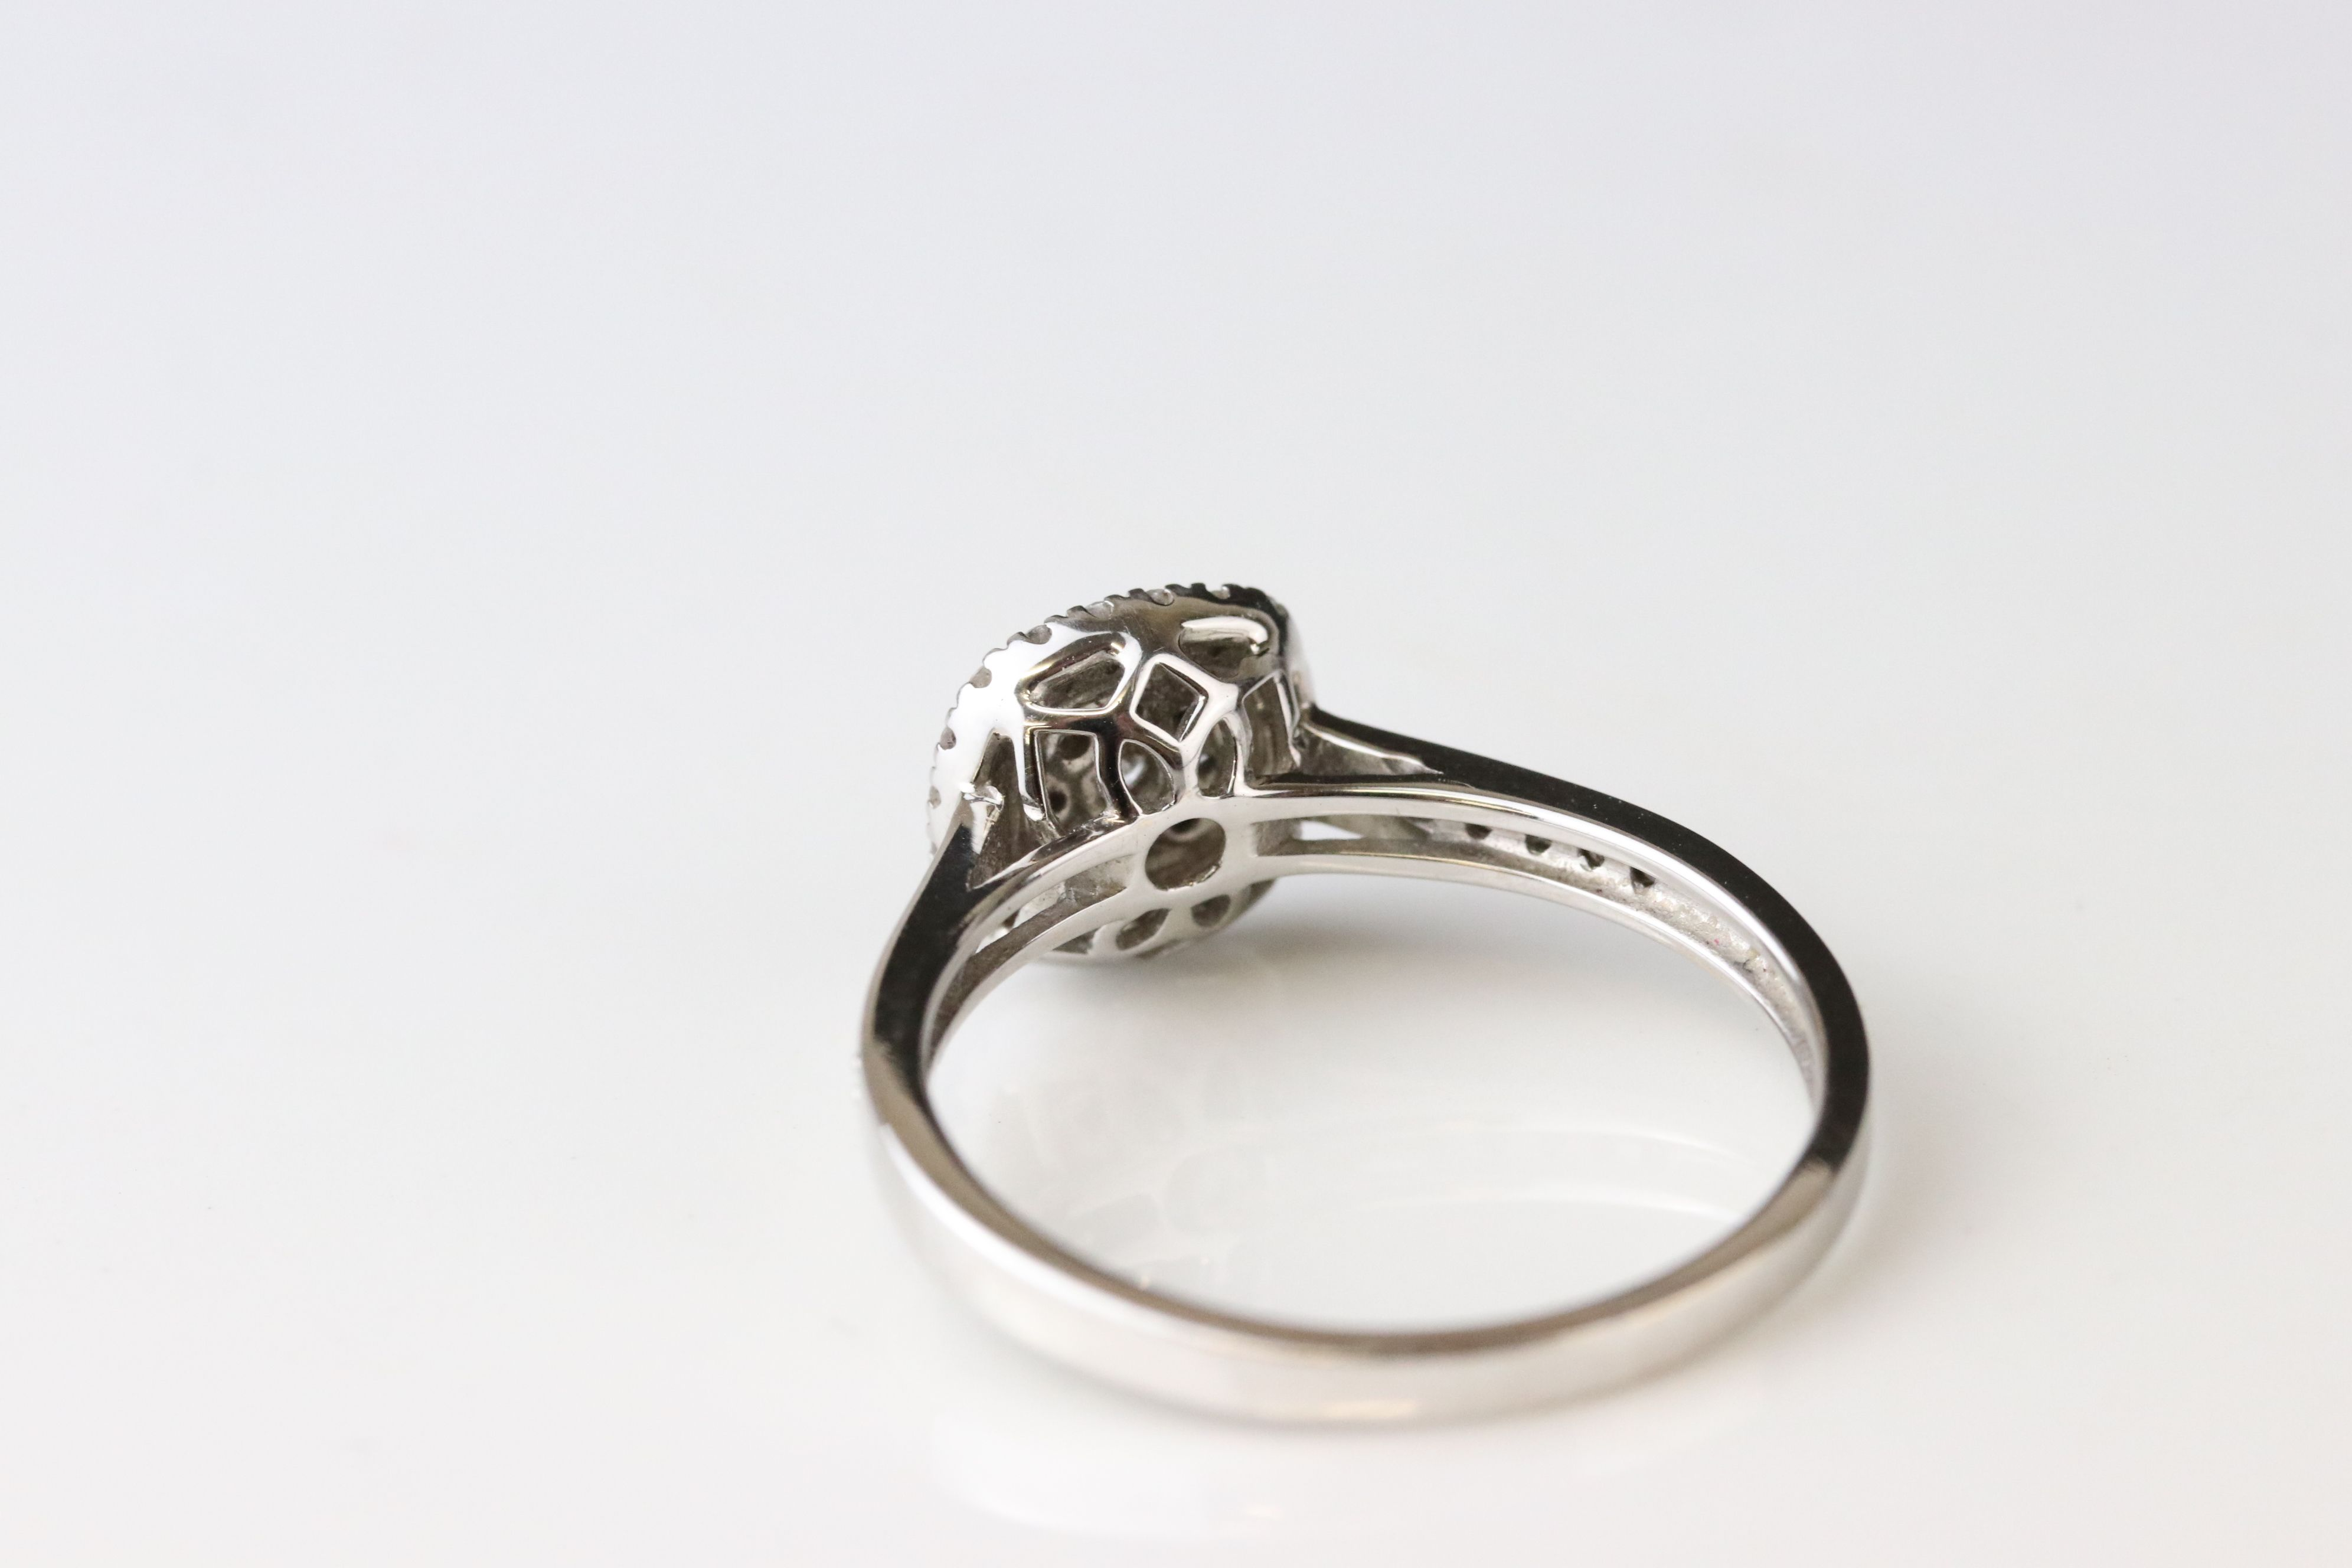 Diamond cluster 18ct white gold ring, nine small round brilliant cut diamonds to central cluster, - Image 3 of 3